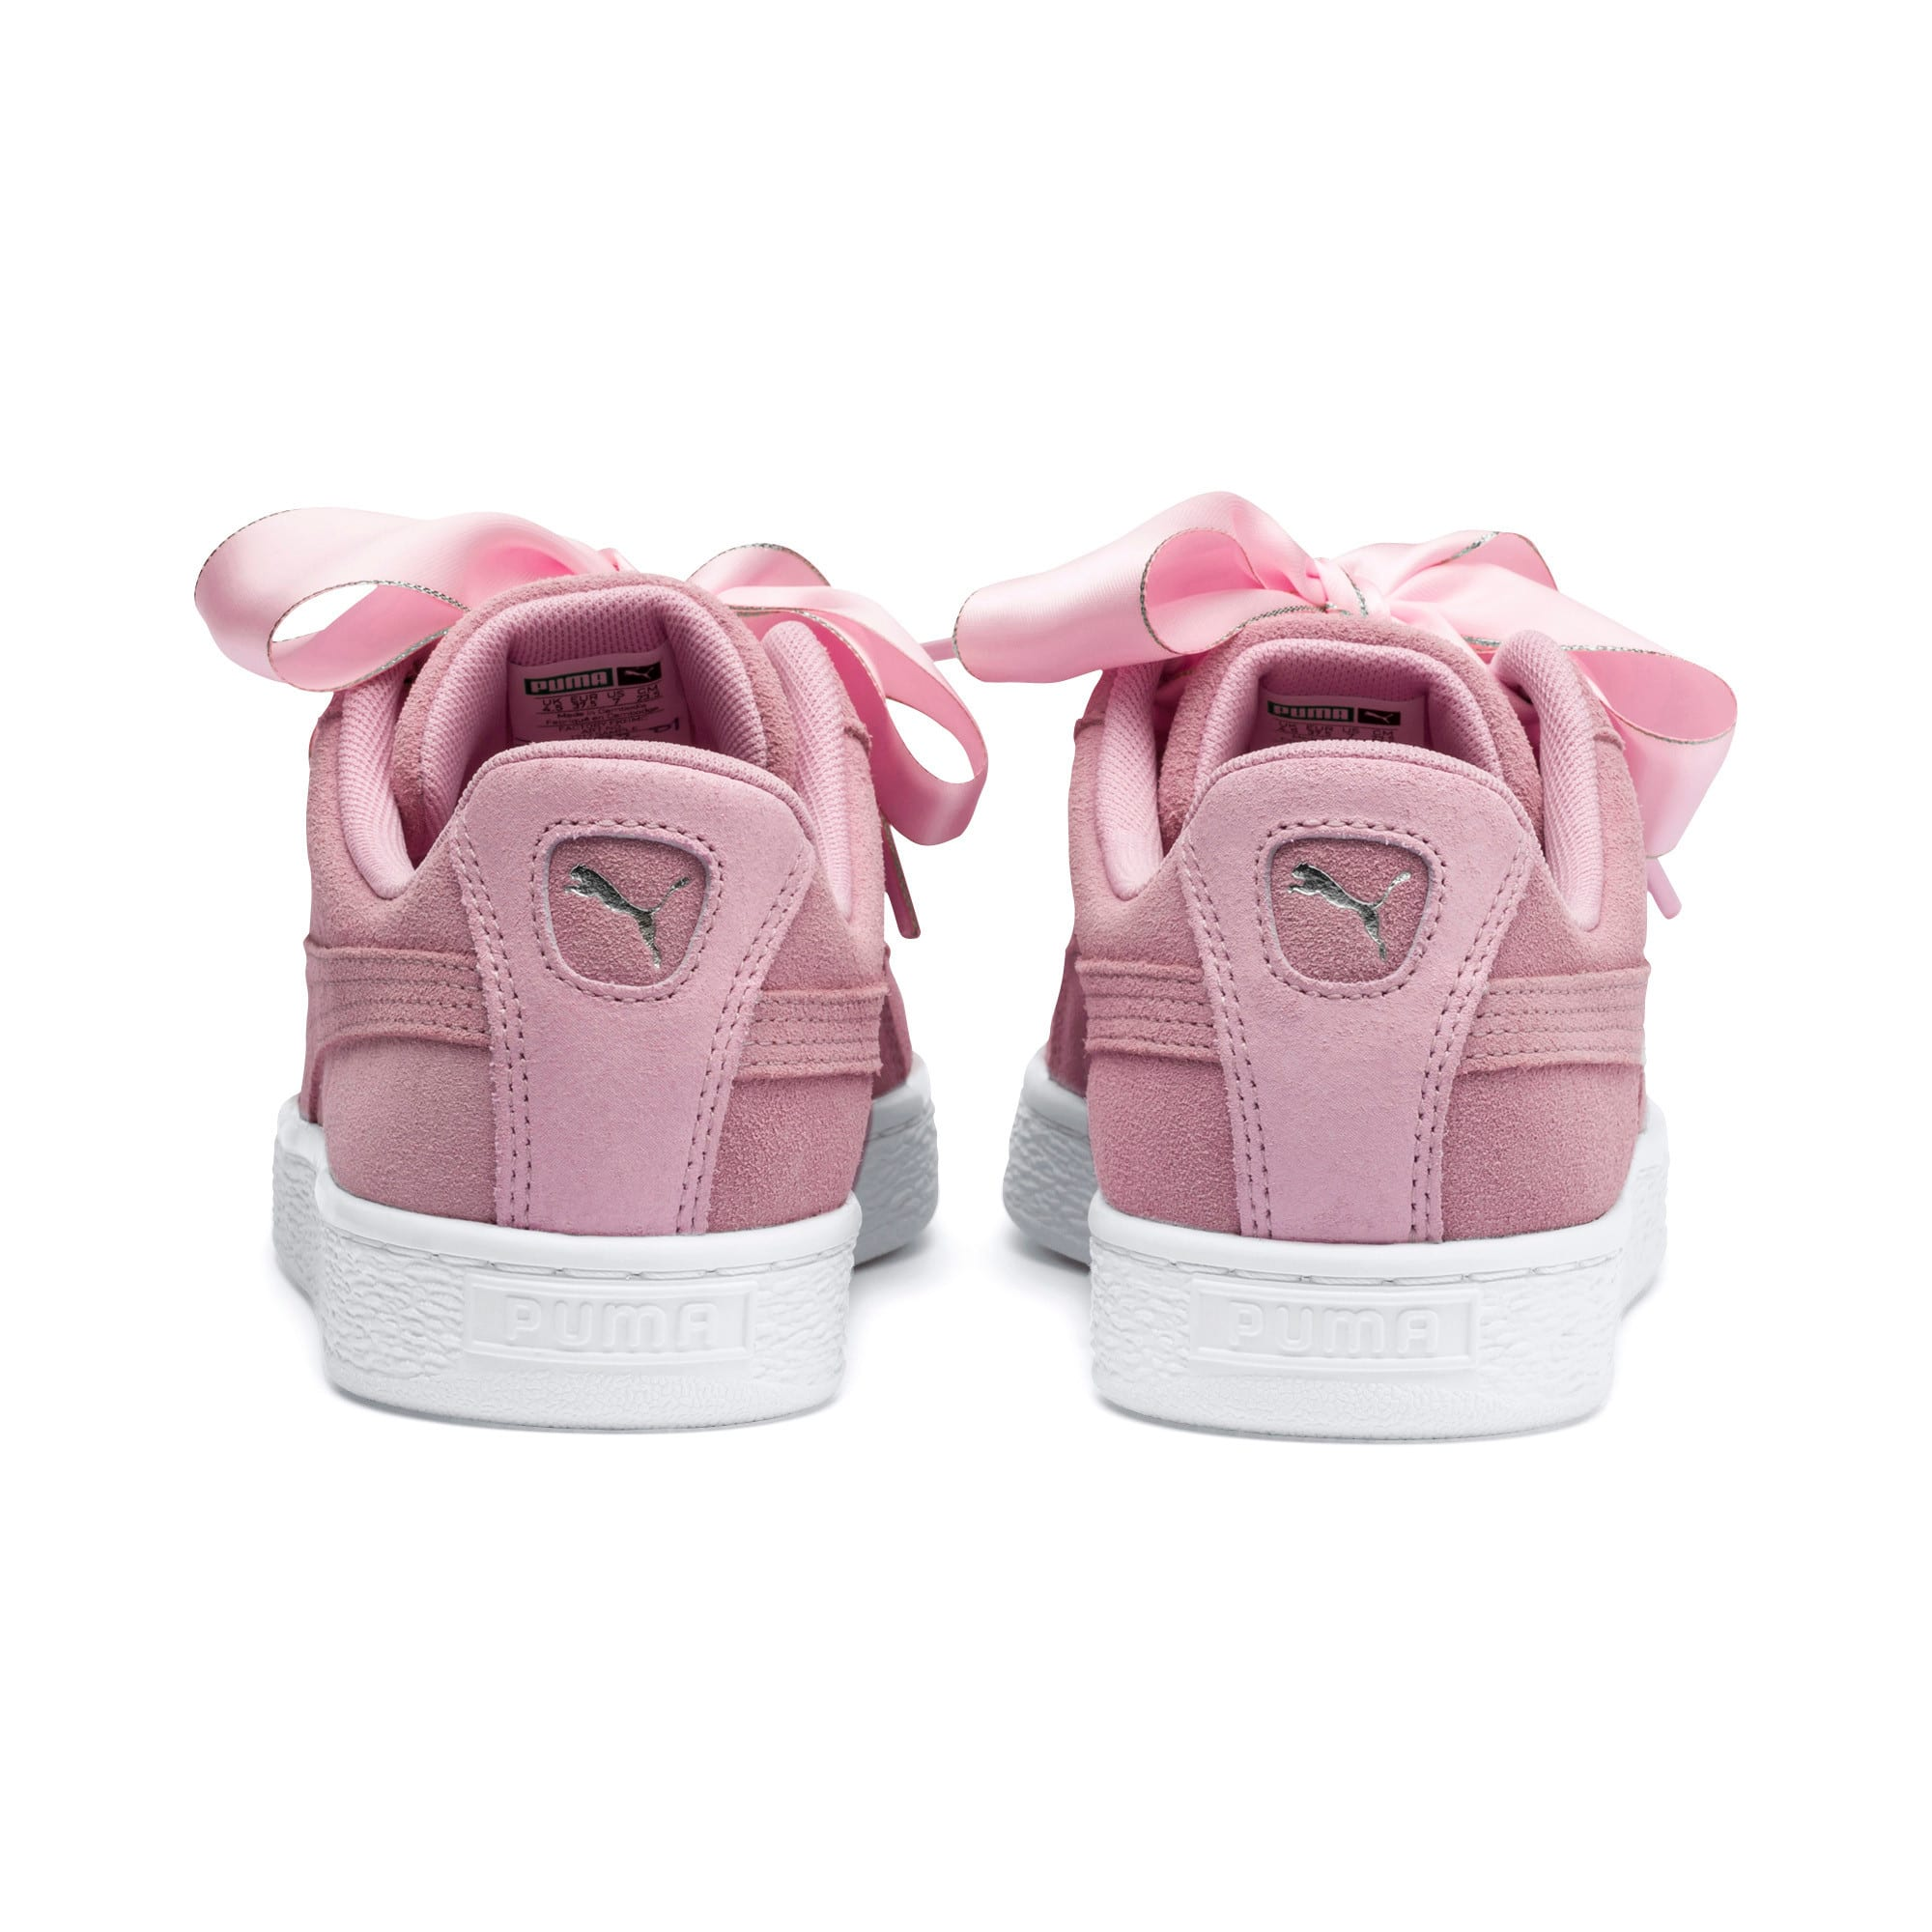 Thumbnail 4 of Suede Heart Galaxy Women's Shoes, Pale Pink-Puma Silver, medium-IND